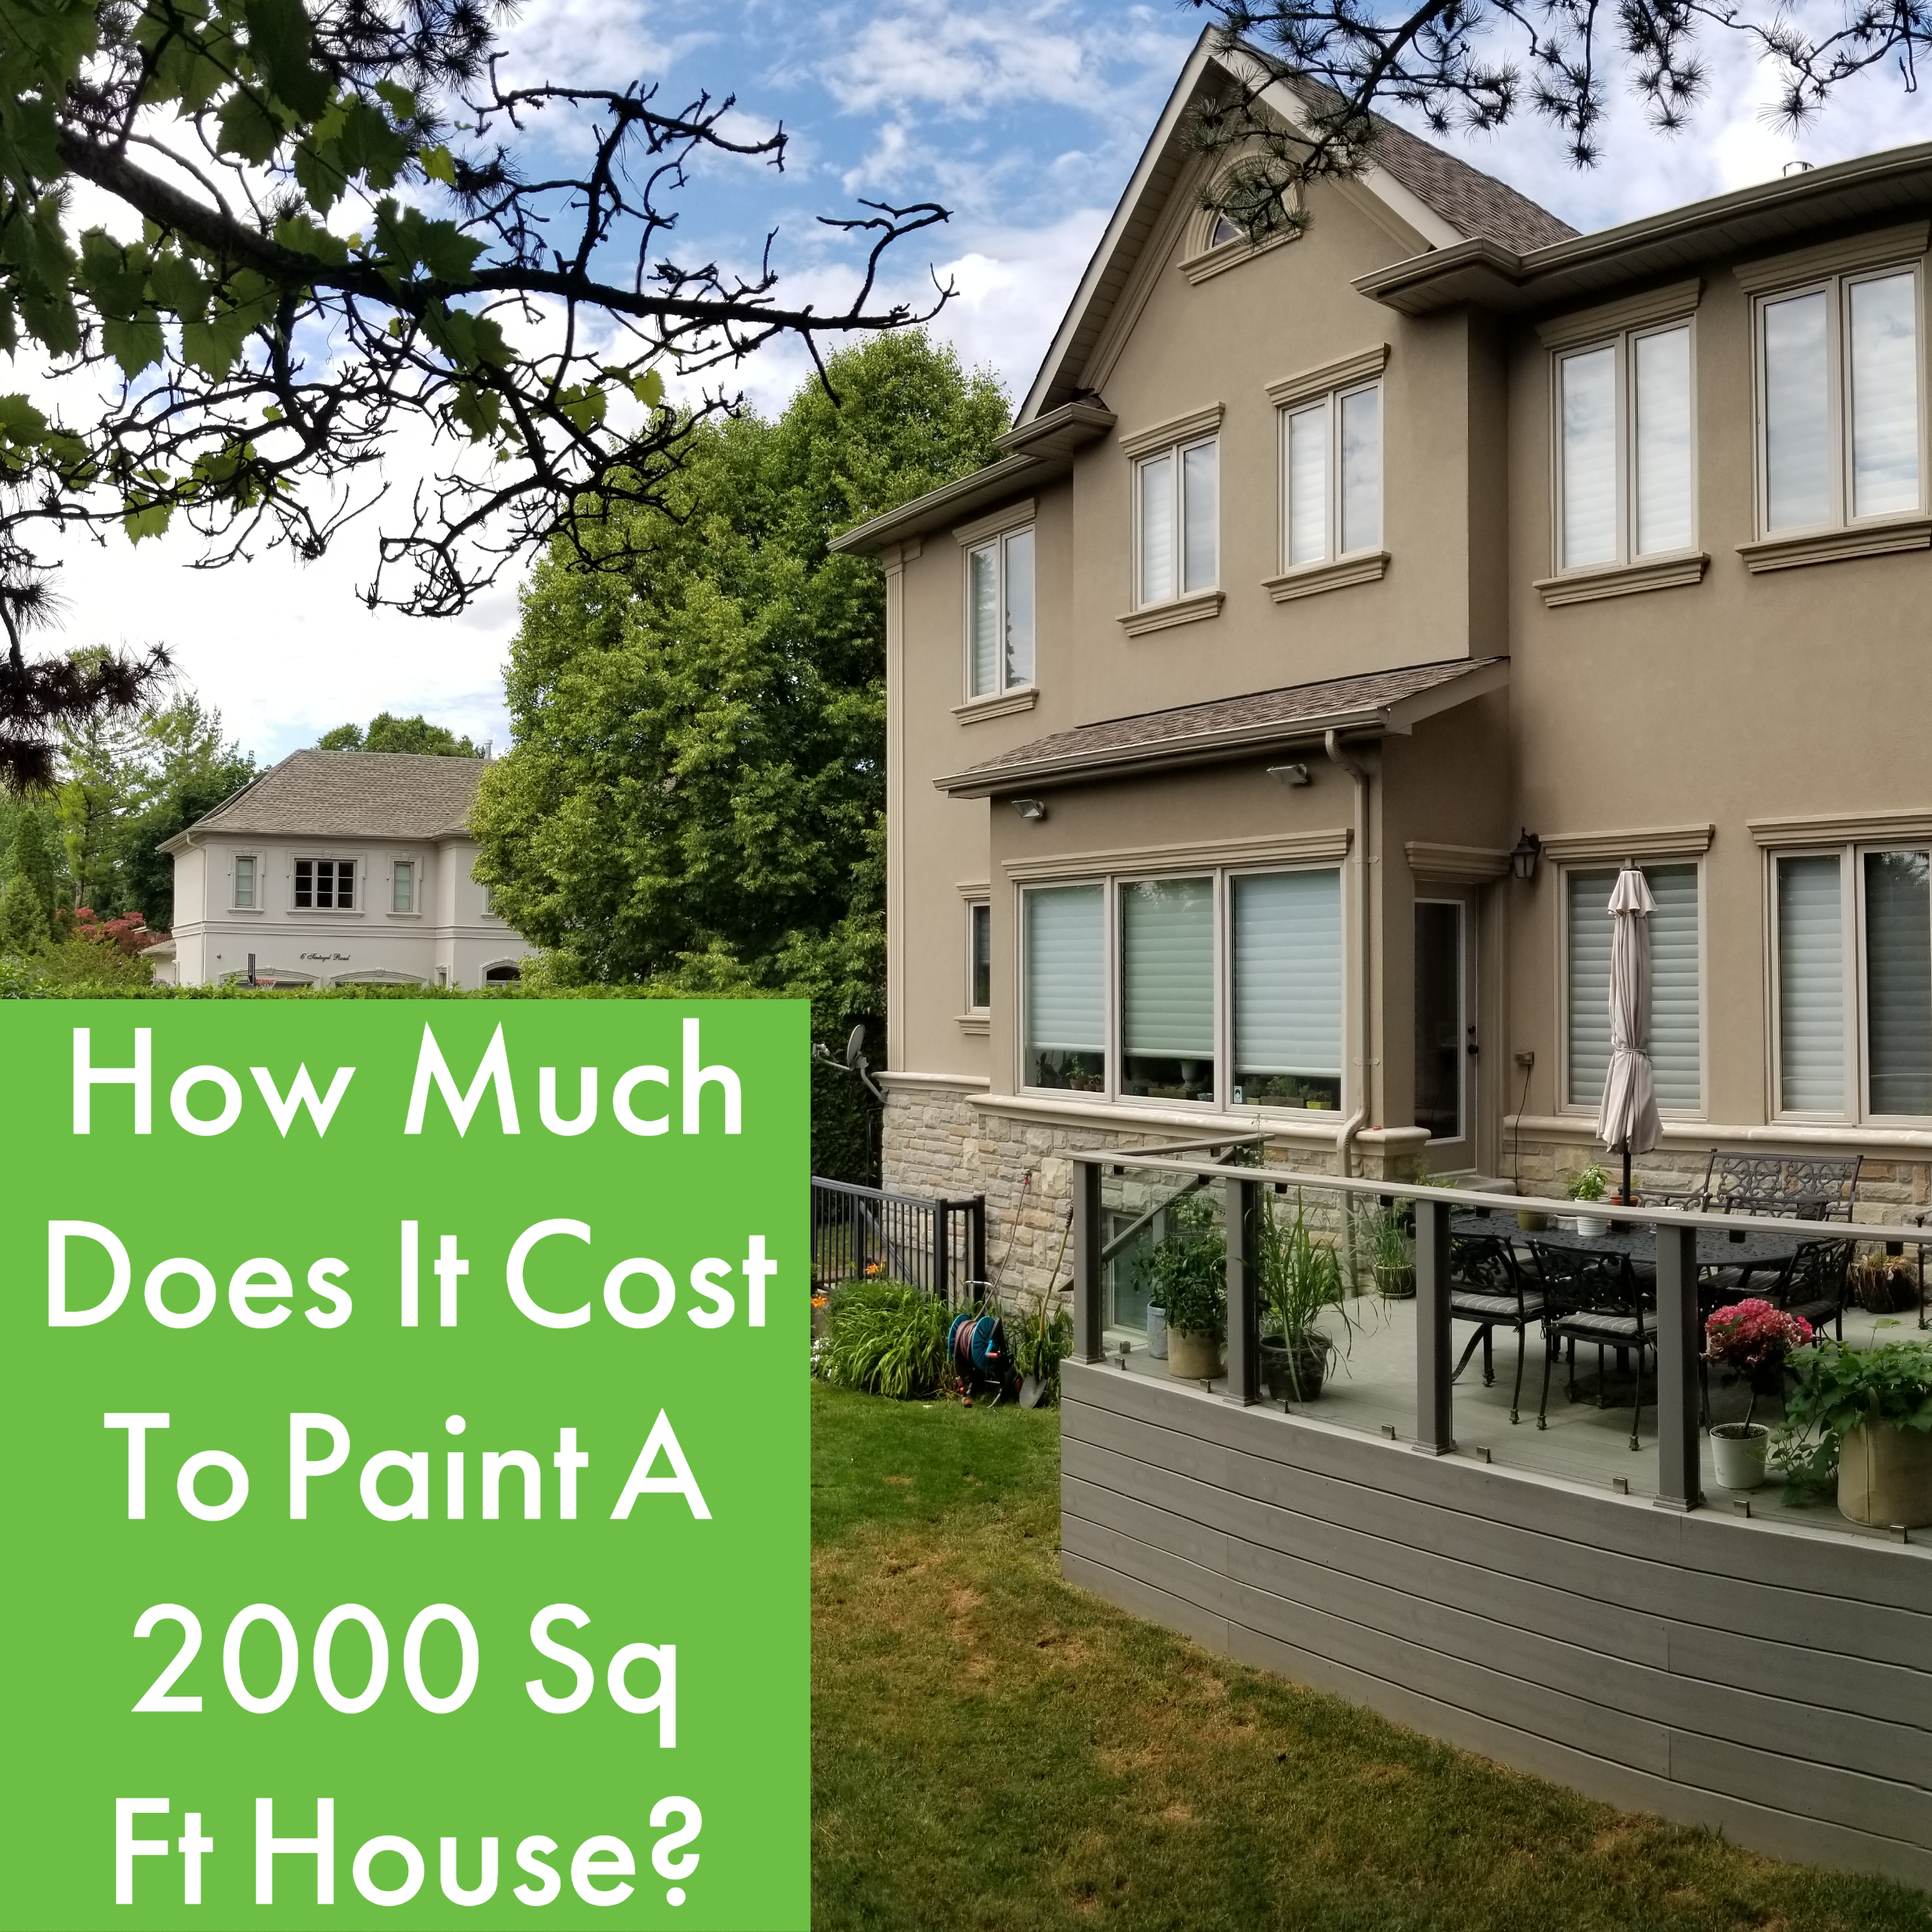 How Much Does It Cost To Paint A 2000 Sq Ft House?